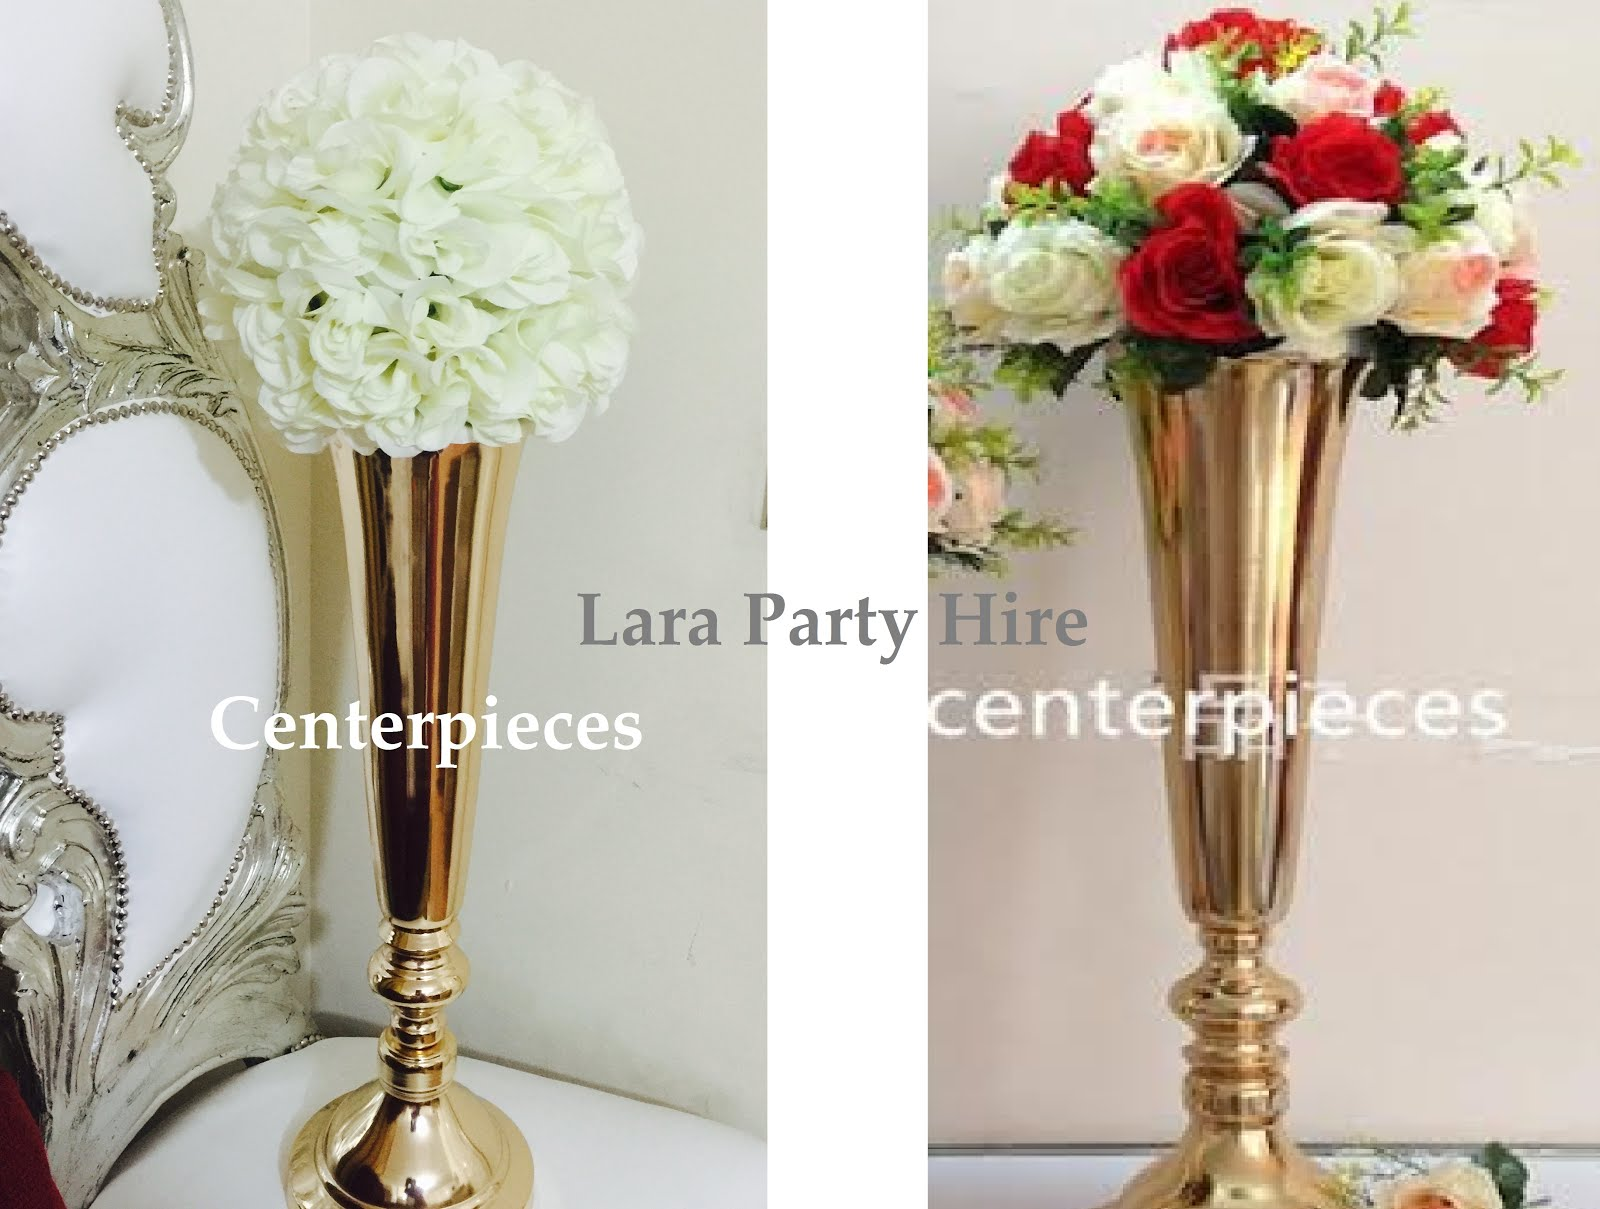 Lara Party Hire: Crystal Chandelier Table Centerpiece